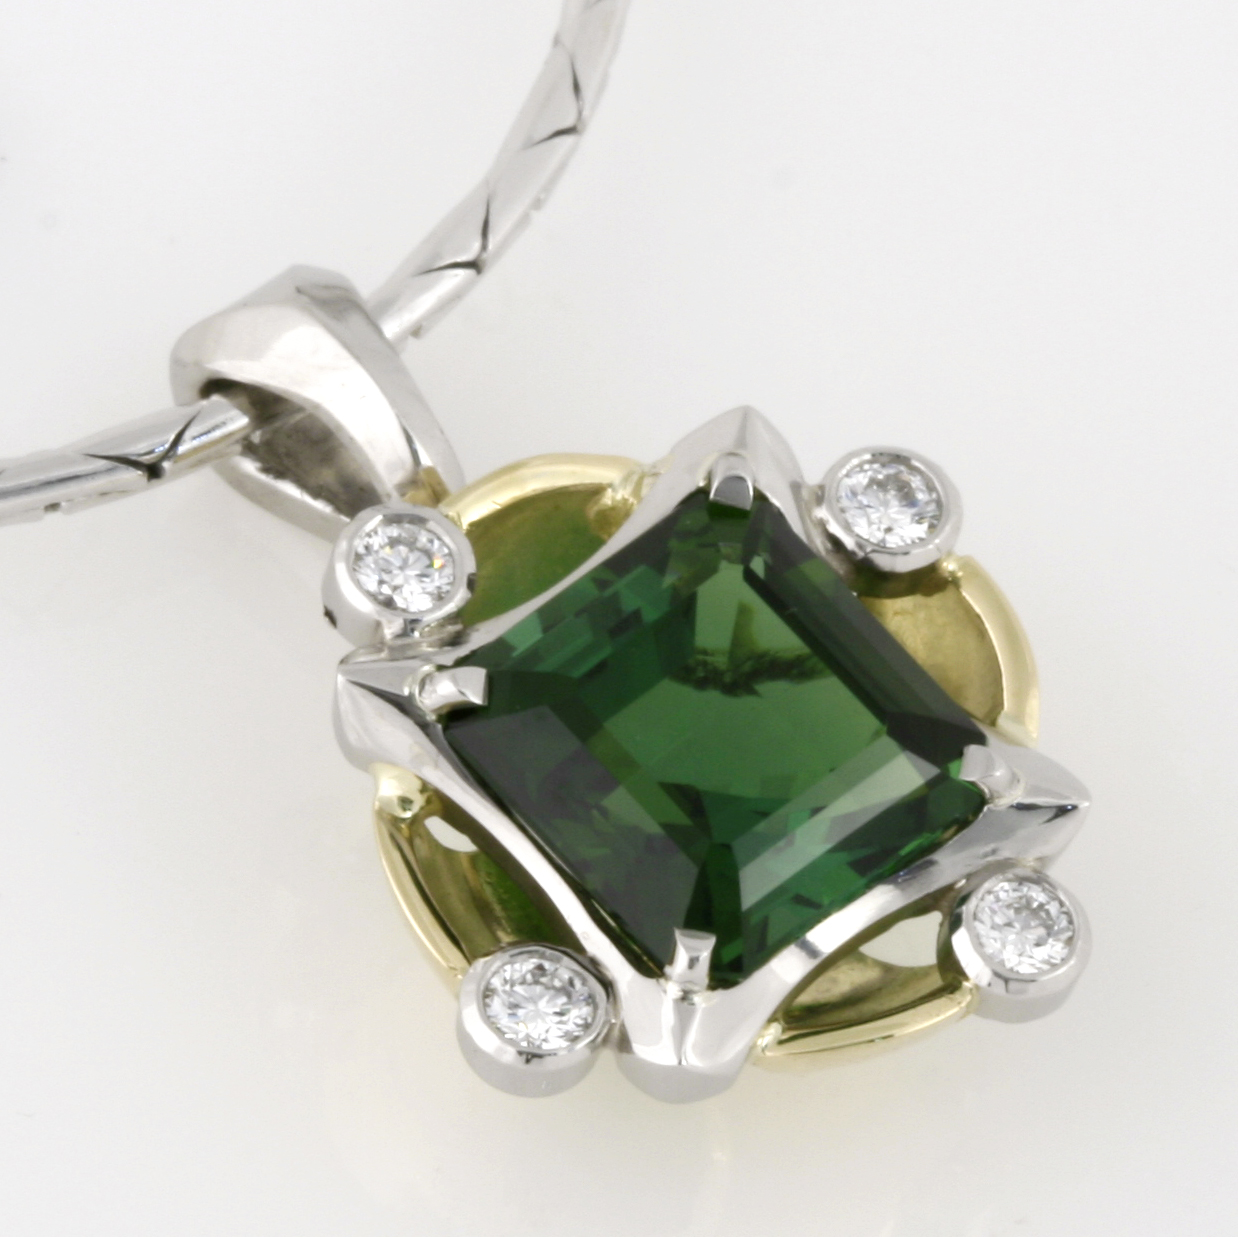 Handmade ladies 18ct green gold and palladium green tourmaline pendant